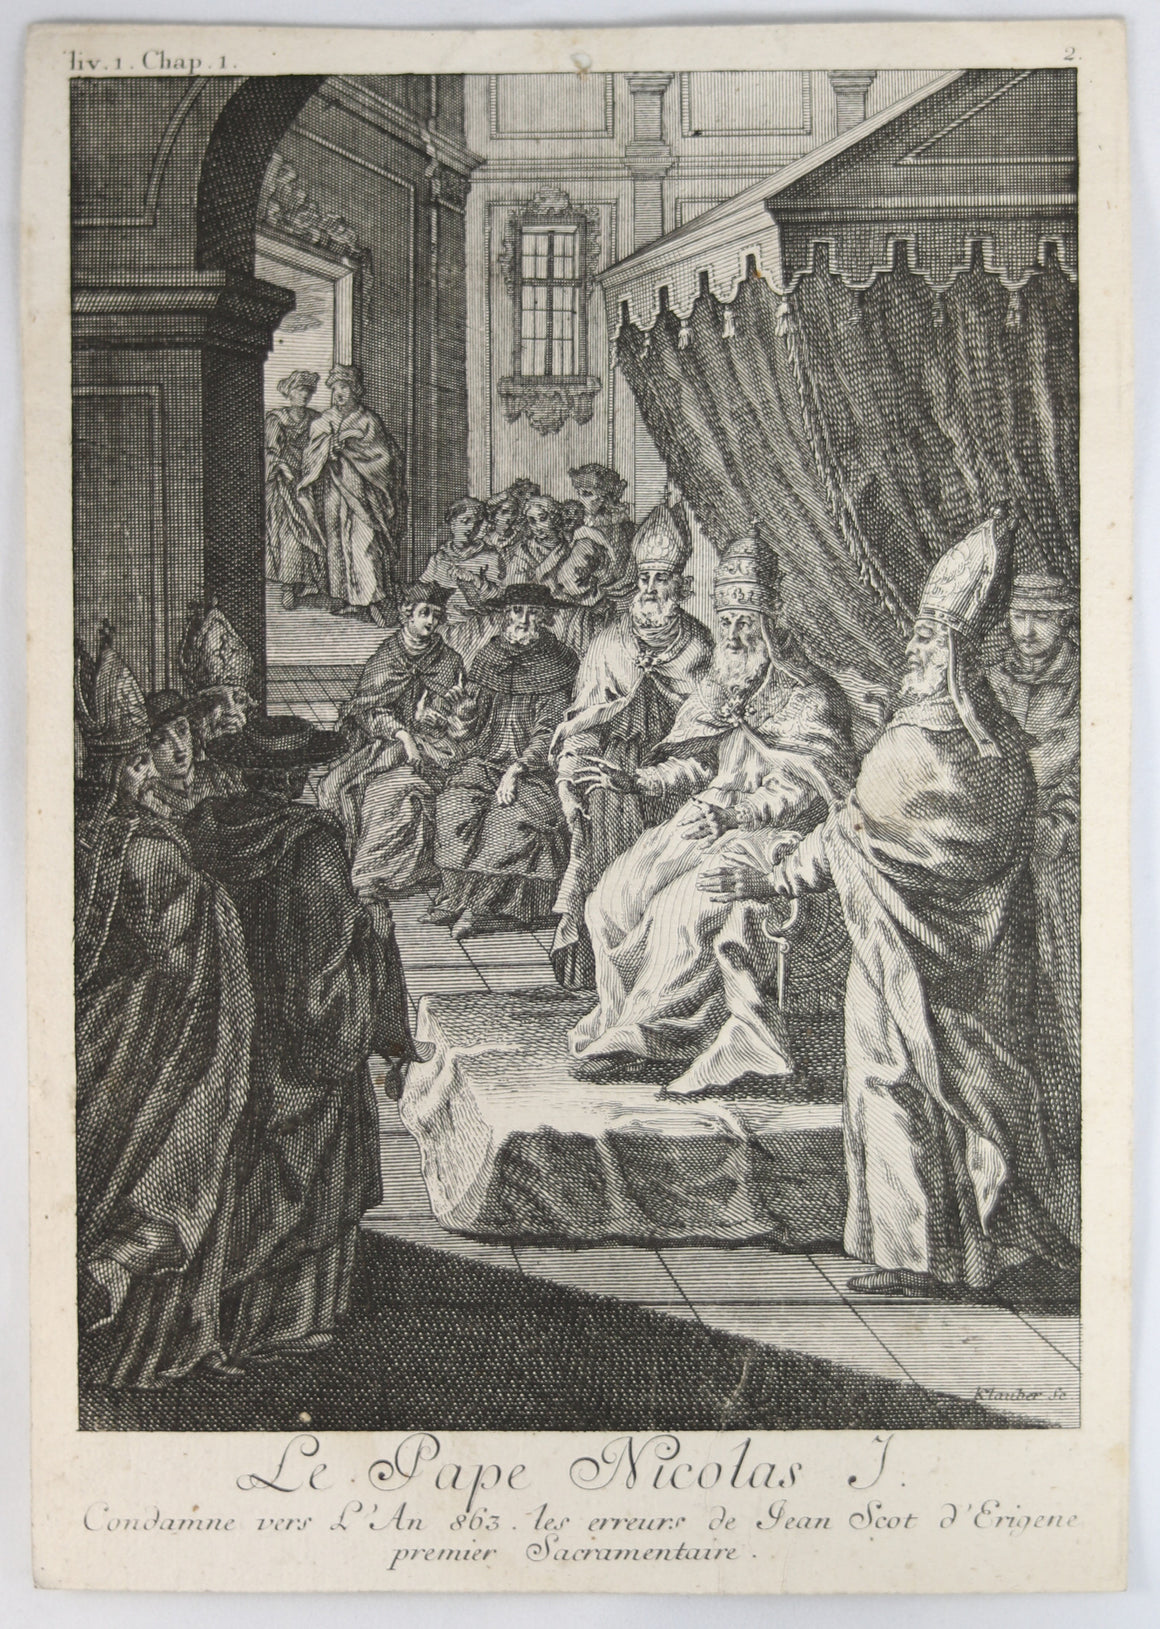 18th Century engraving of Pope Nicholas I by Klauber